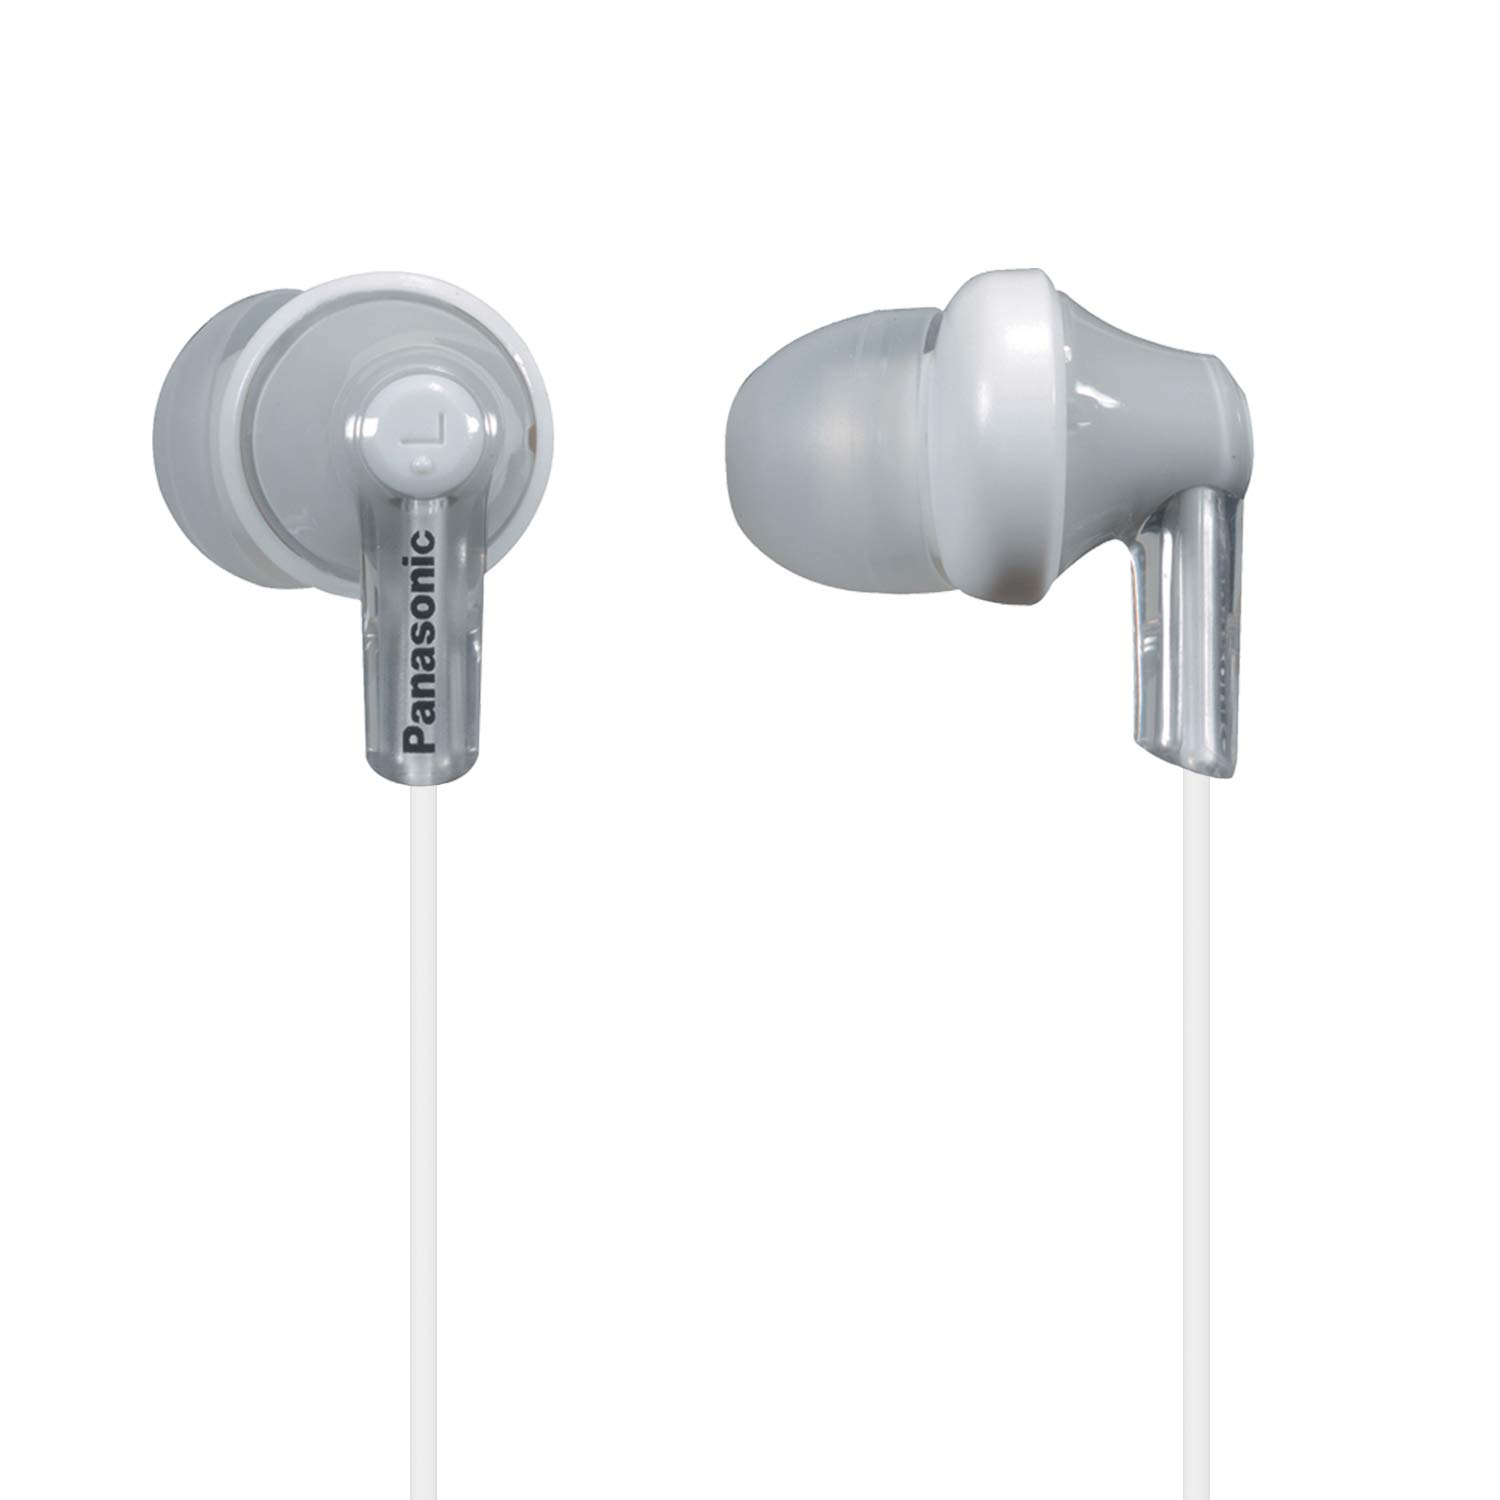 Panasonic ErgoFit In-Ear Earbud Headphones RP-HJE120-S (Silver) Dynamic 6c9c823641